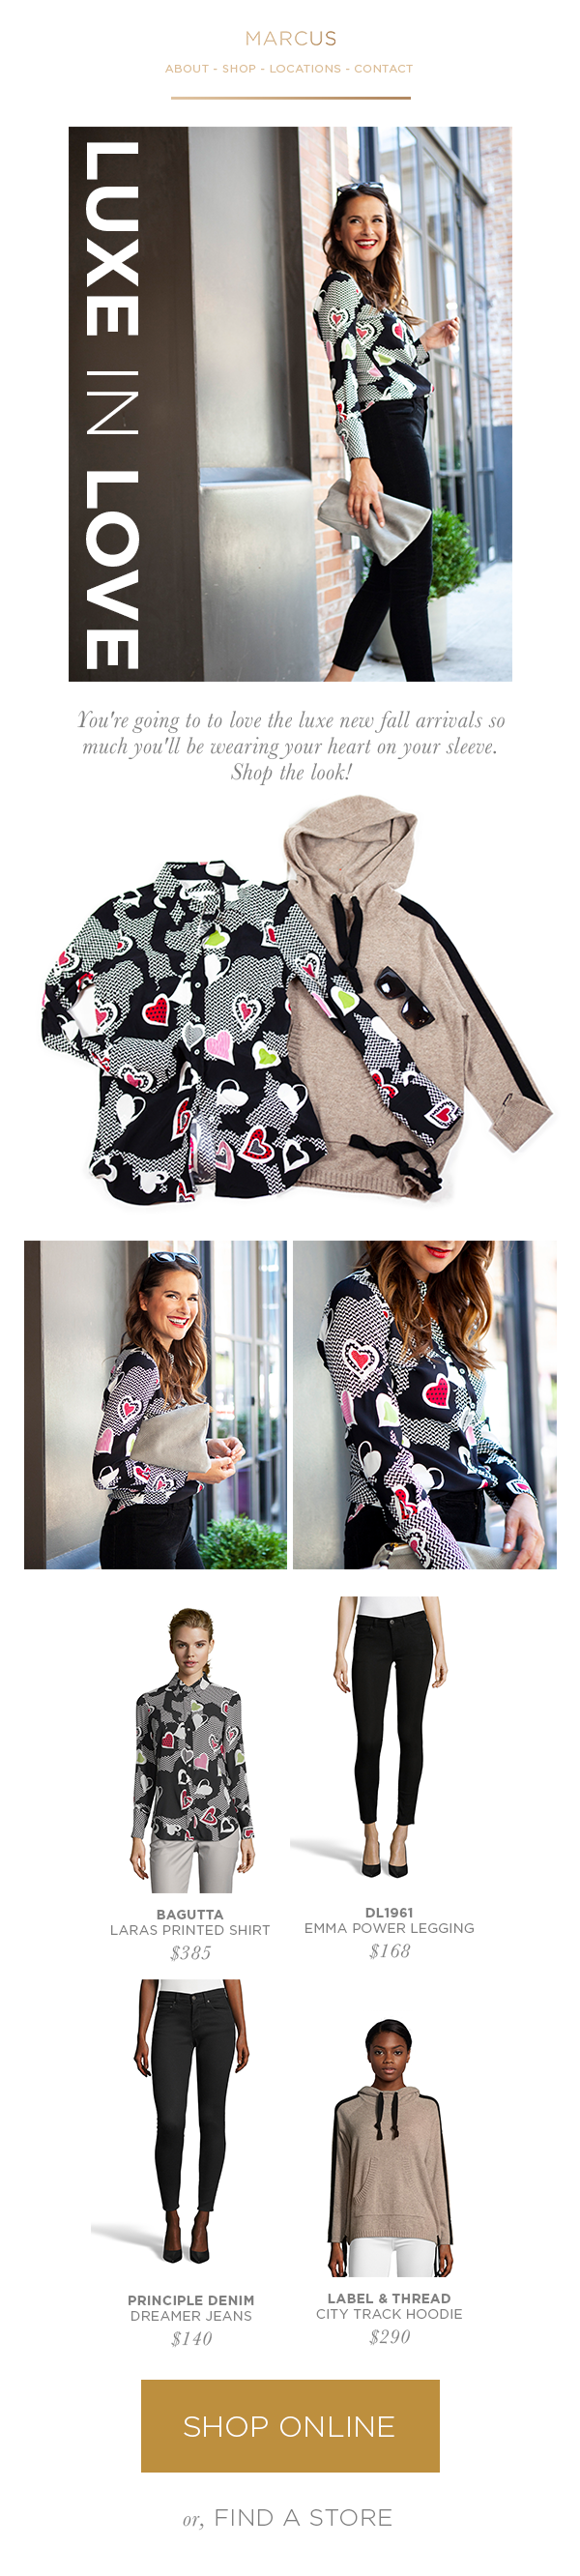 Marcus_Email_Heart-Checker-Blouse.png